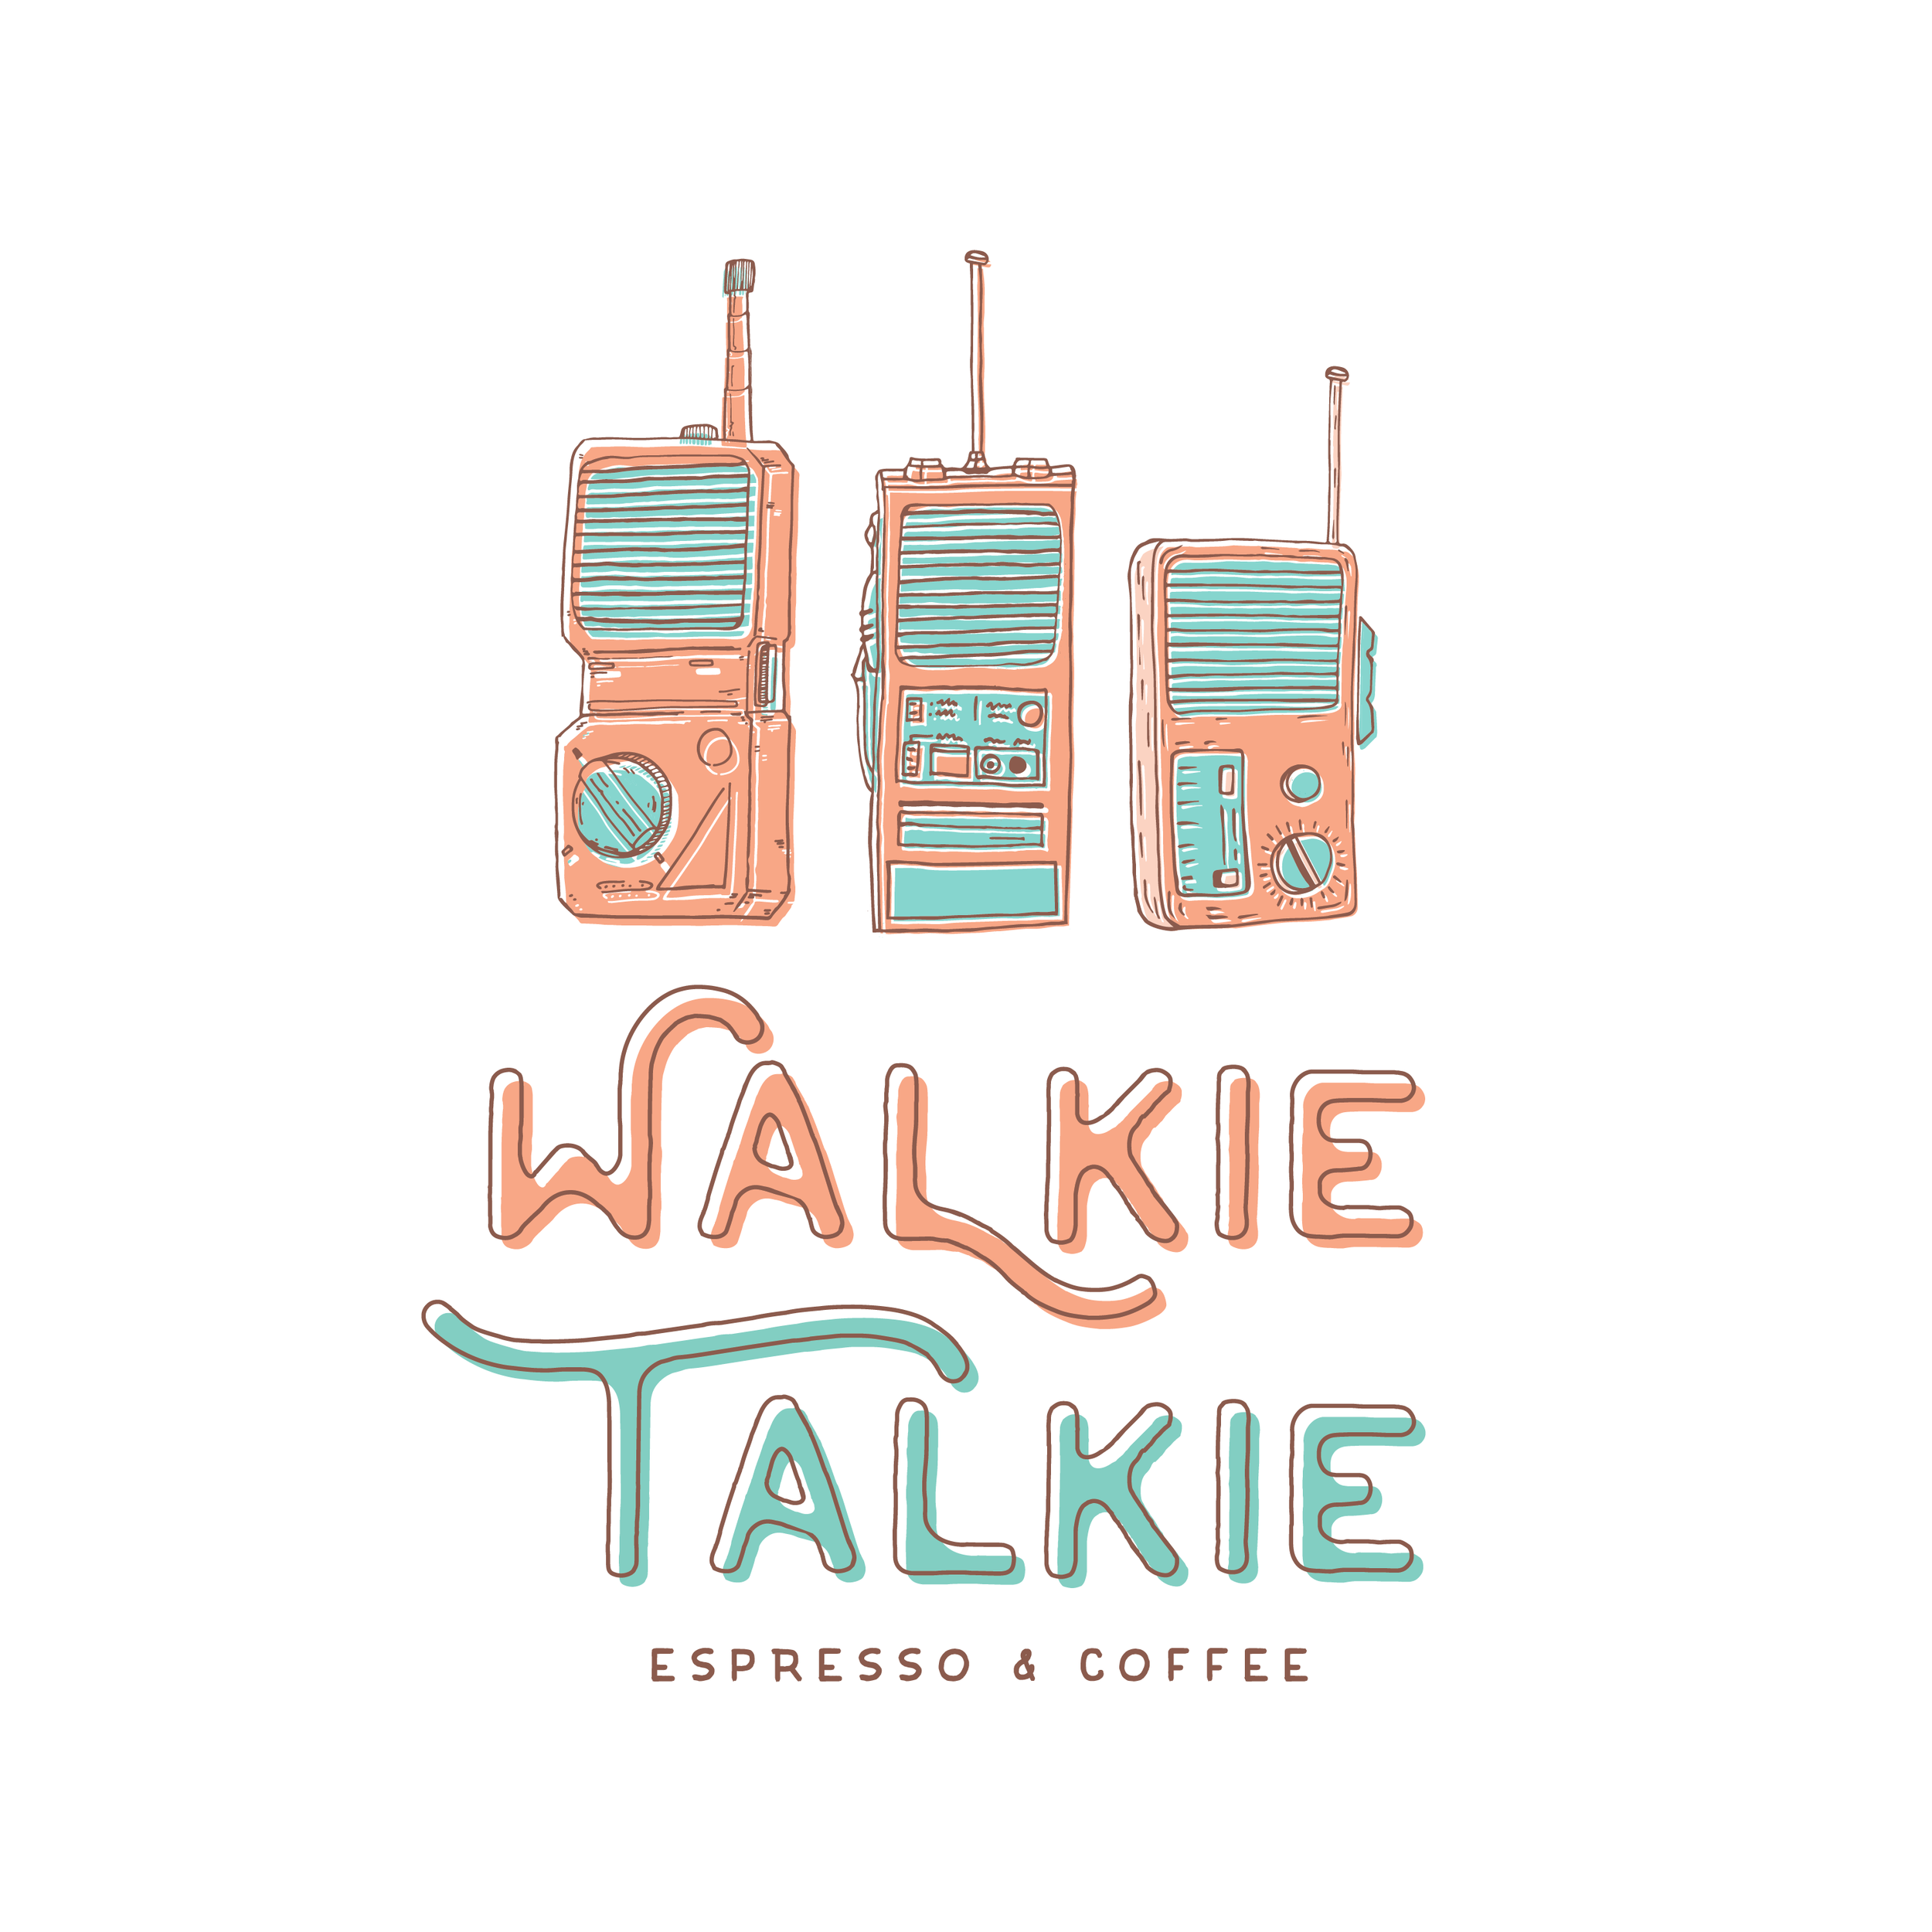 WALKIE TALKIE ESPRESSO & COFFEE / photography + design - Walkie Talkie Illustration by artist Cory Windland / A hip lil' neighborhood coffee shop in Canton, OH dishing out some delicious drinks with great vibes and conversations.